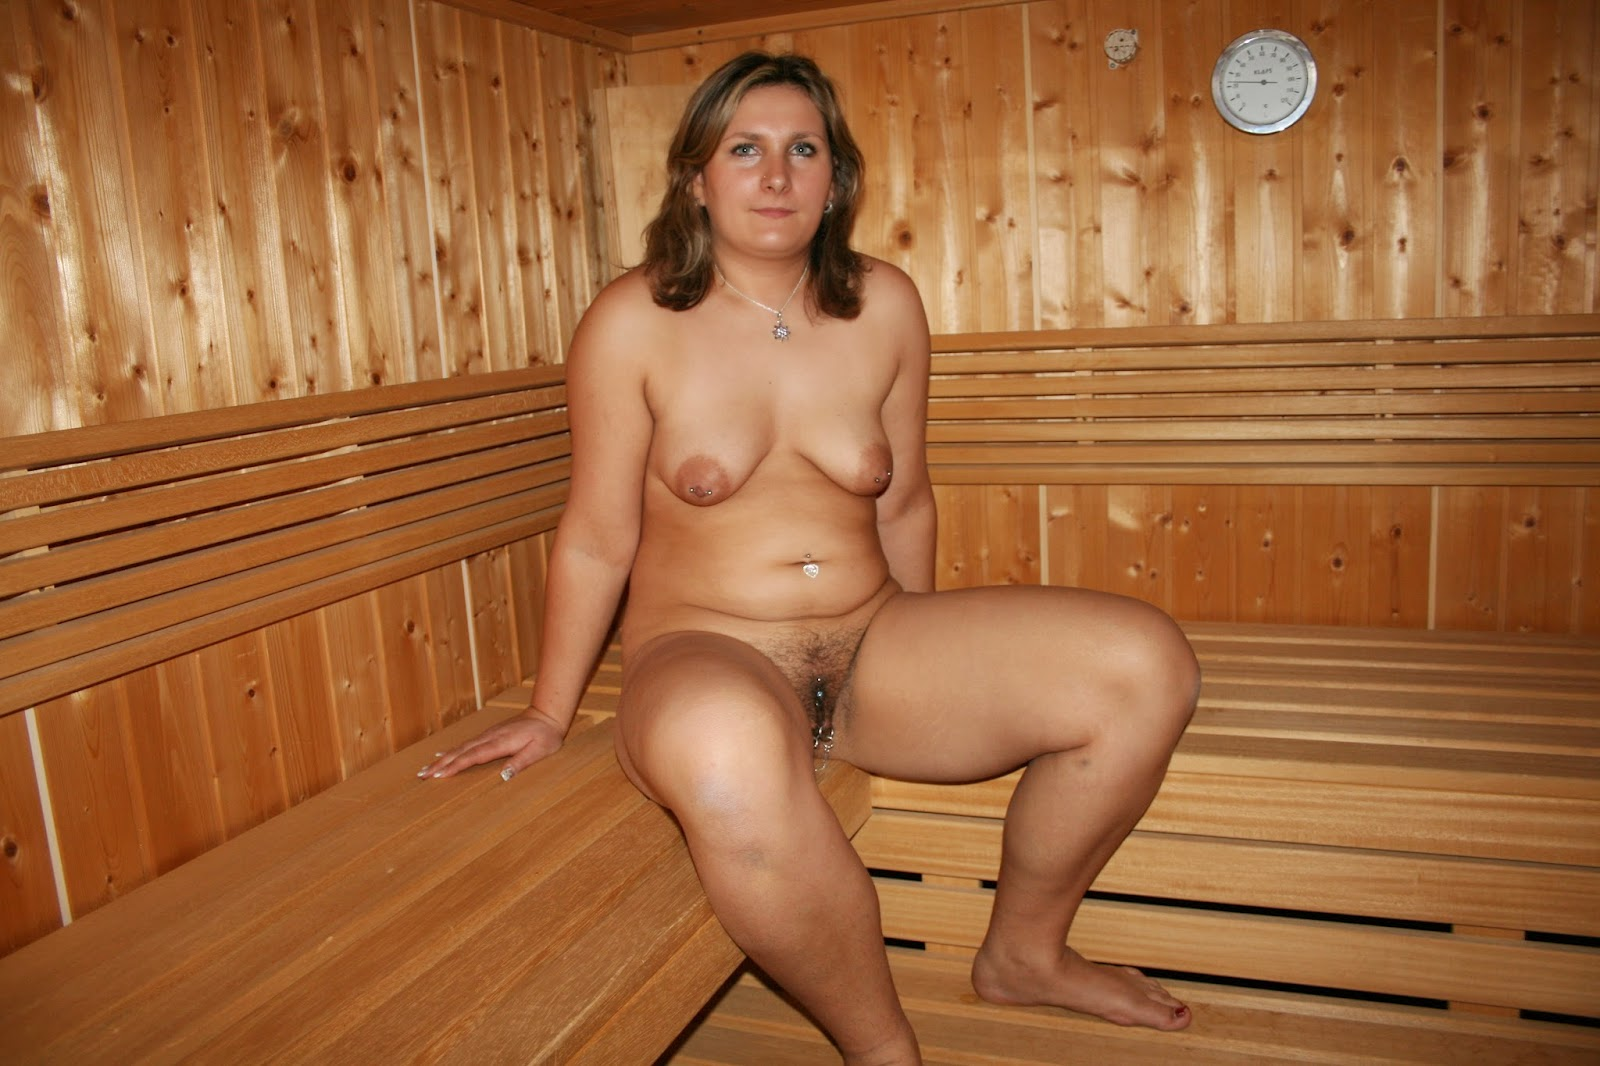 ficken in nürnberg sex in sauna